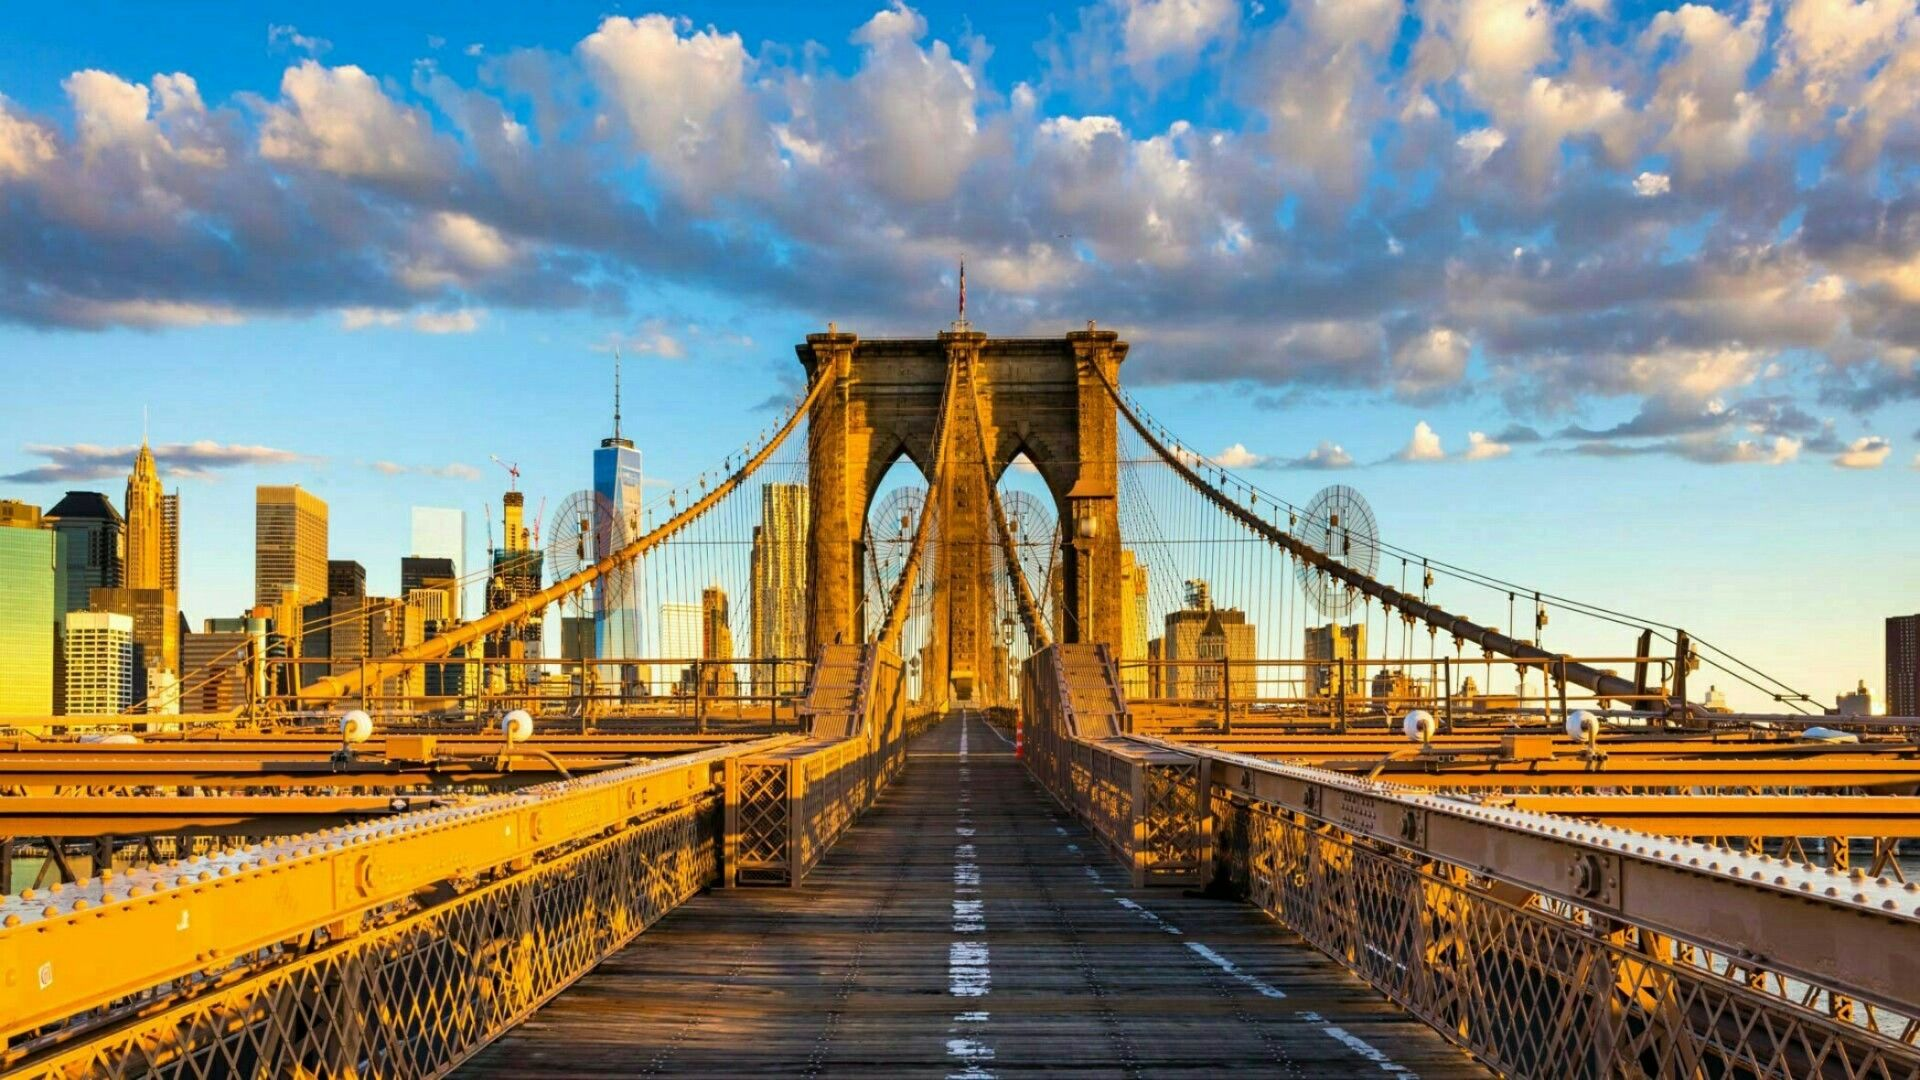 Brooklyn Bridge Hd Wallpapers Top Free Brooklyn Bridge Hd